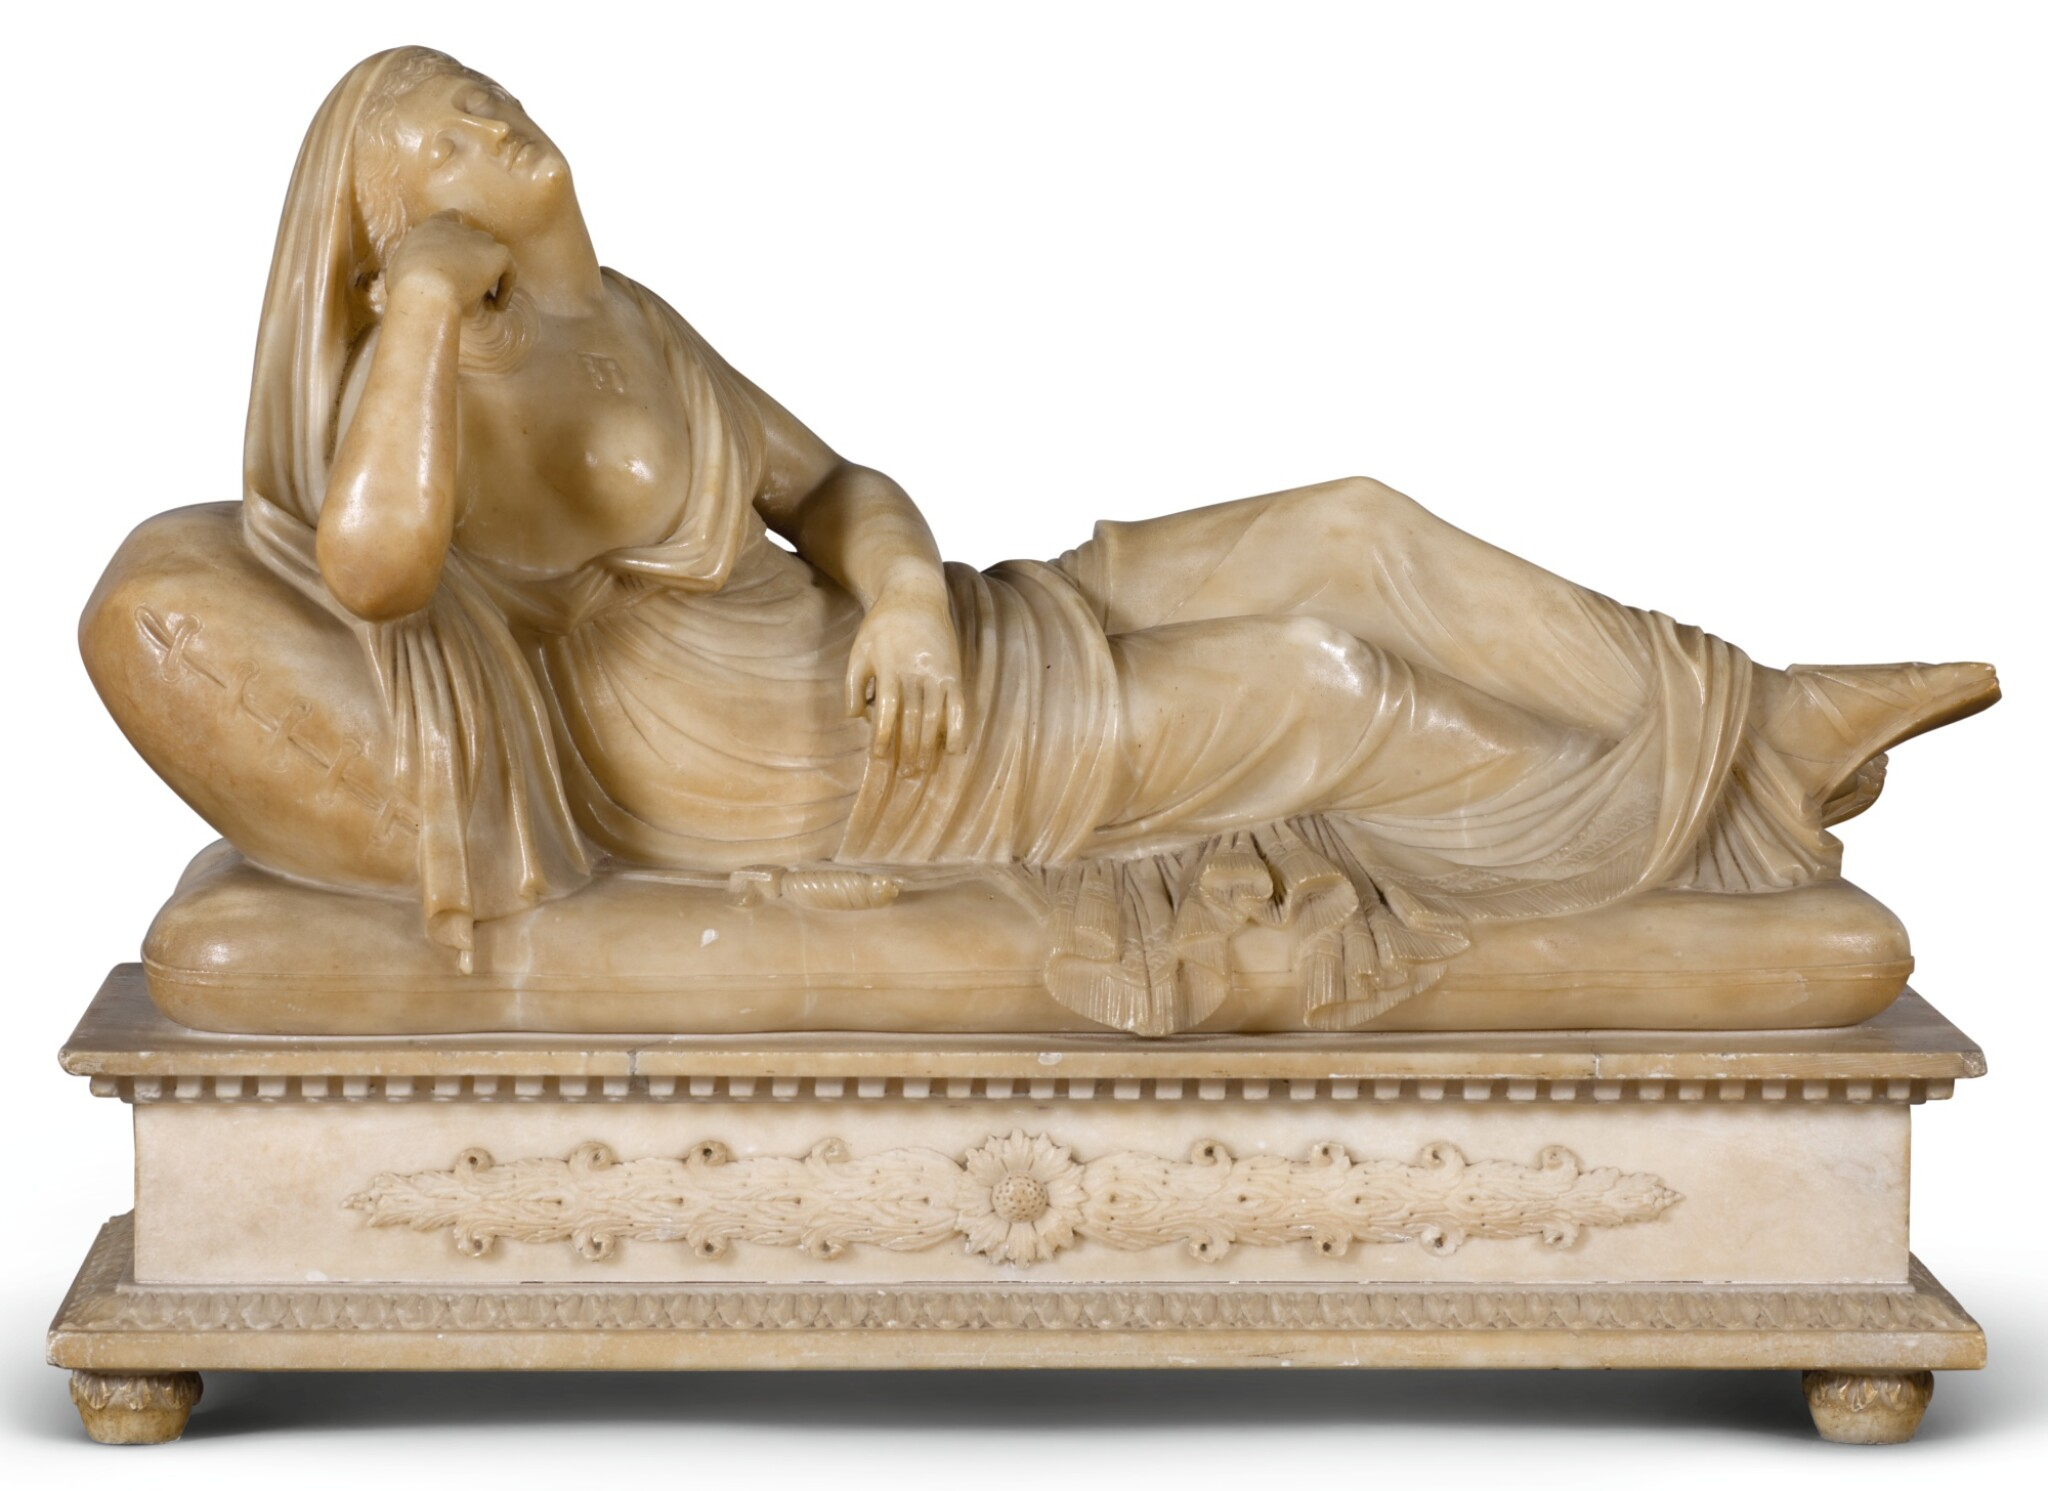 ITALIAN, LATE 18TH CENTURY AFTER THE ANTIQUE | Lucretia as the Sleeping Ariadne